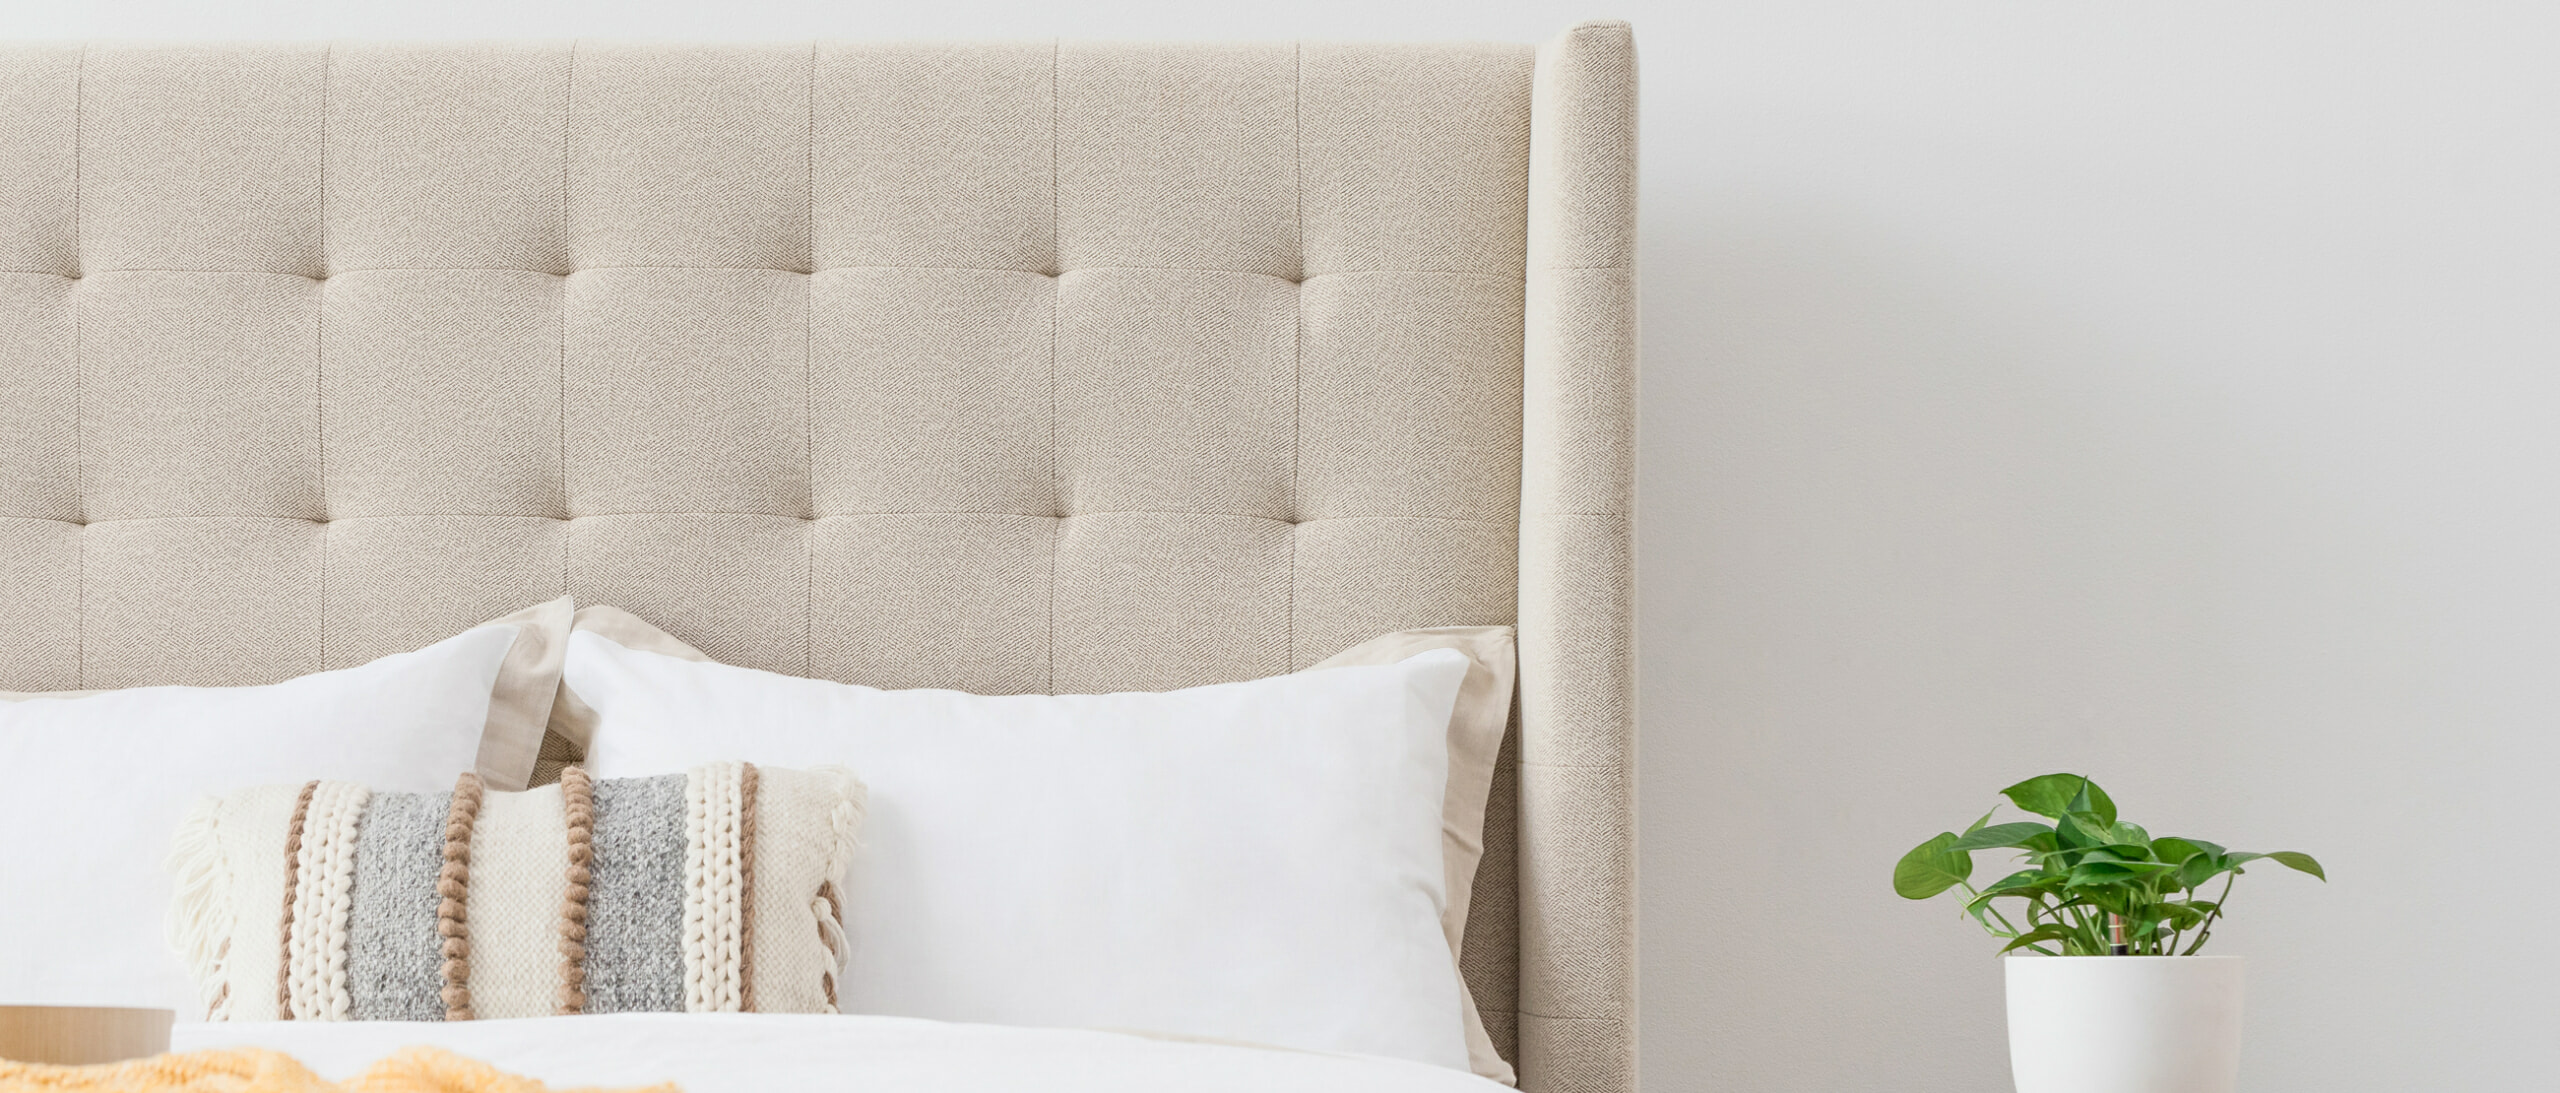 Introducing the Venice Bed